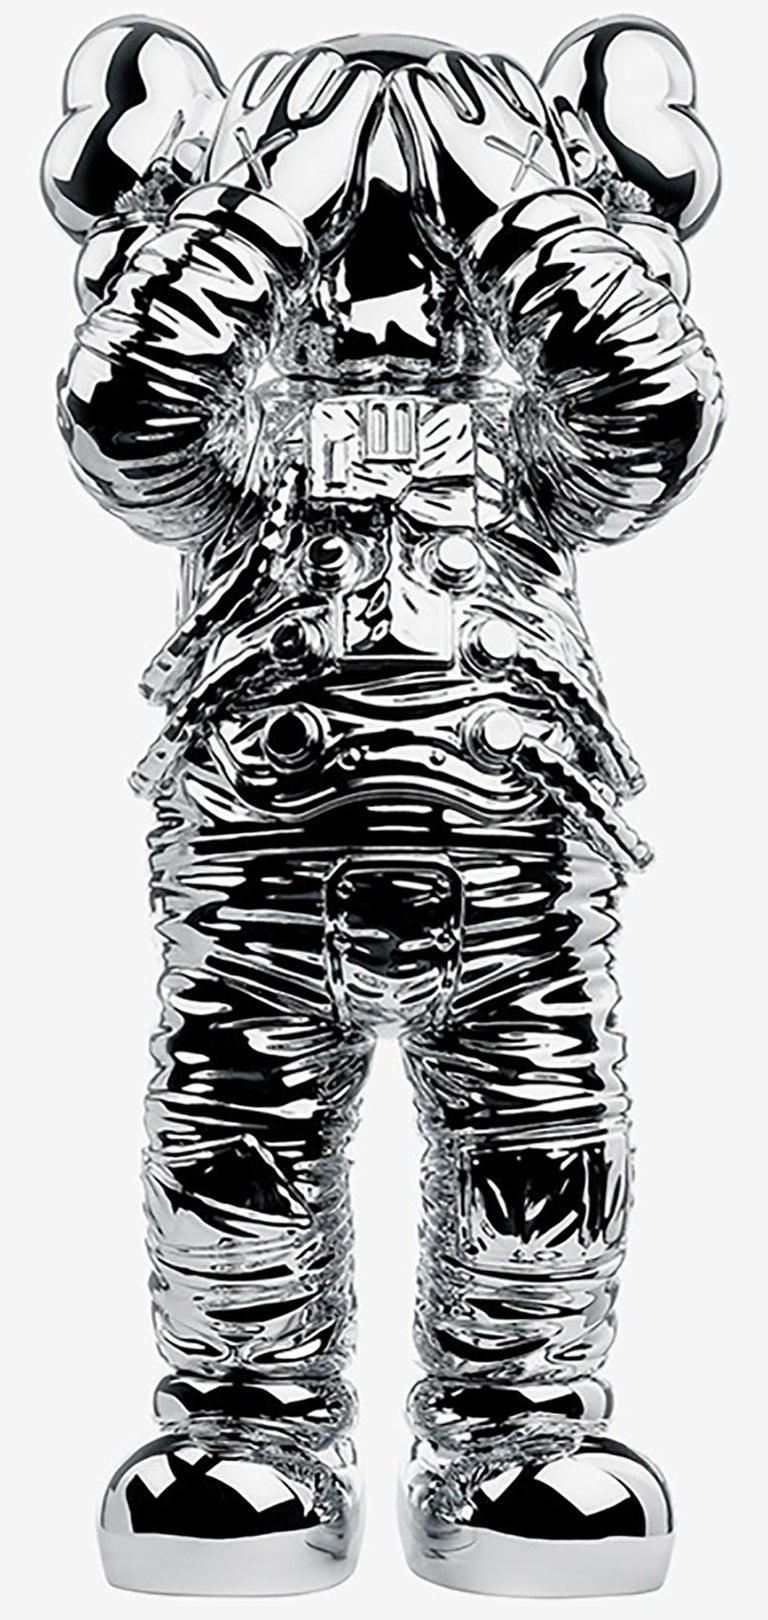 KAWS Holiday SPACE: set of 2 works (KAWS silver gold space)  - Pop Art Print by KAWS